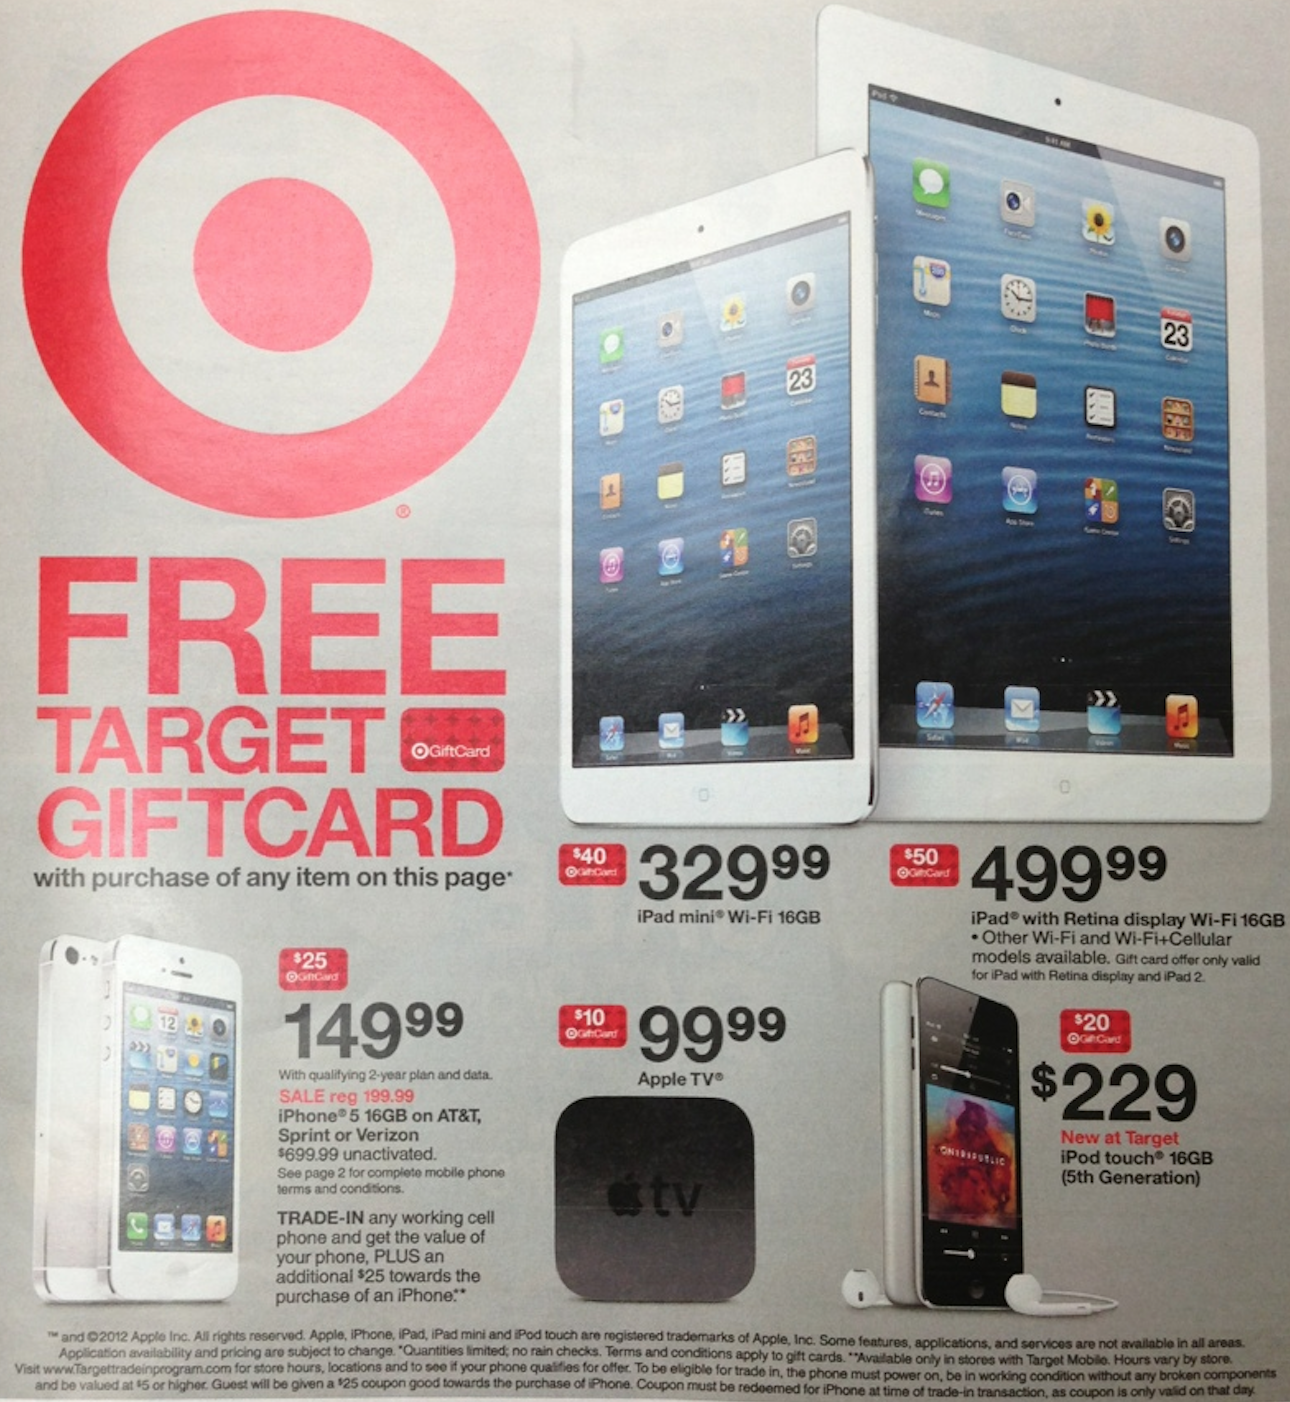 target promoting free gift cards with iphone ipad ipod apple tv